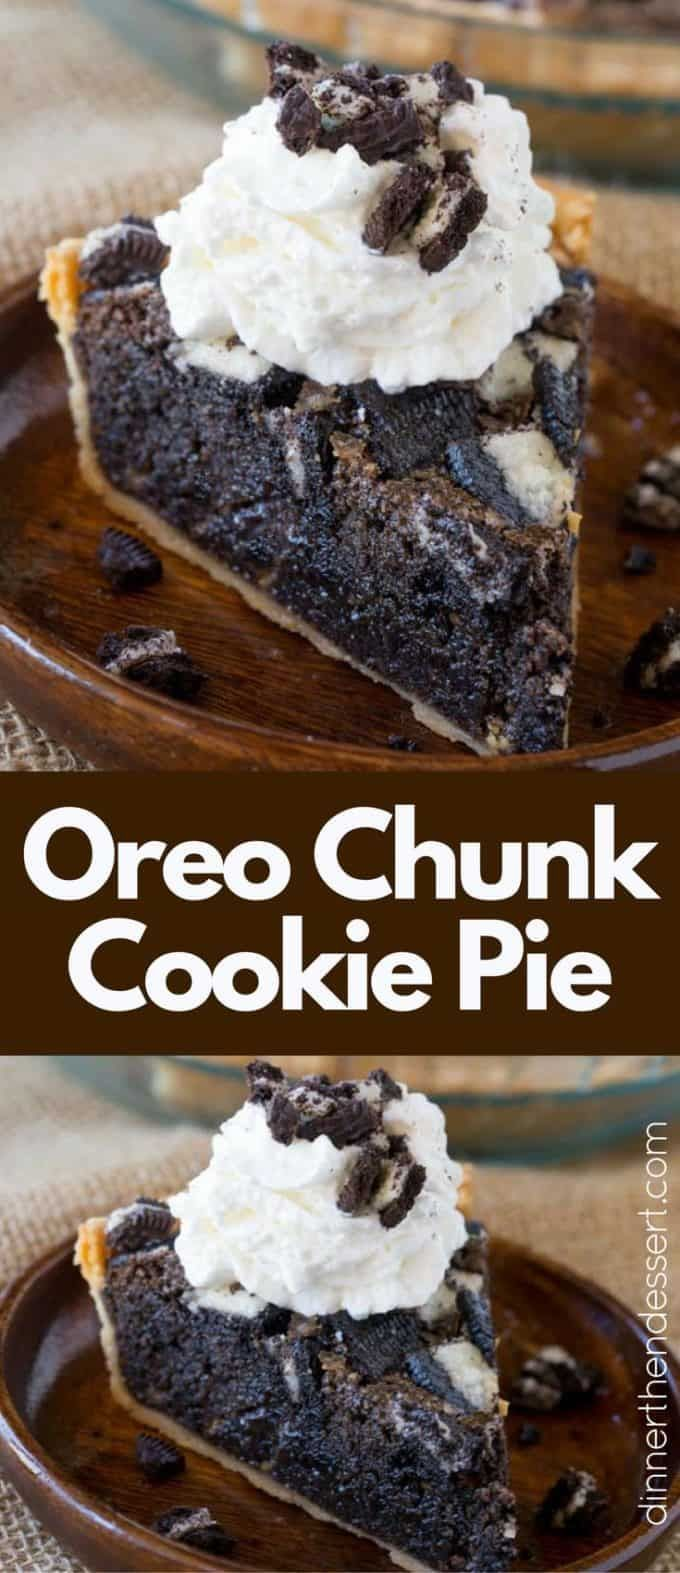 The Ultimate Oreo Pie that tastes like warm Oreo cookie baked into a buttery pie crust thats half pie and half cookie served best with vanilla ice cream! Ultimate Oreo Pie that tastes like warm Oreo cookie baked into a buttery pie crust thats half pie and half cookie served best with vanilla ice cream!